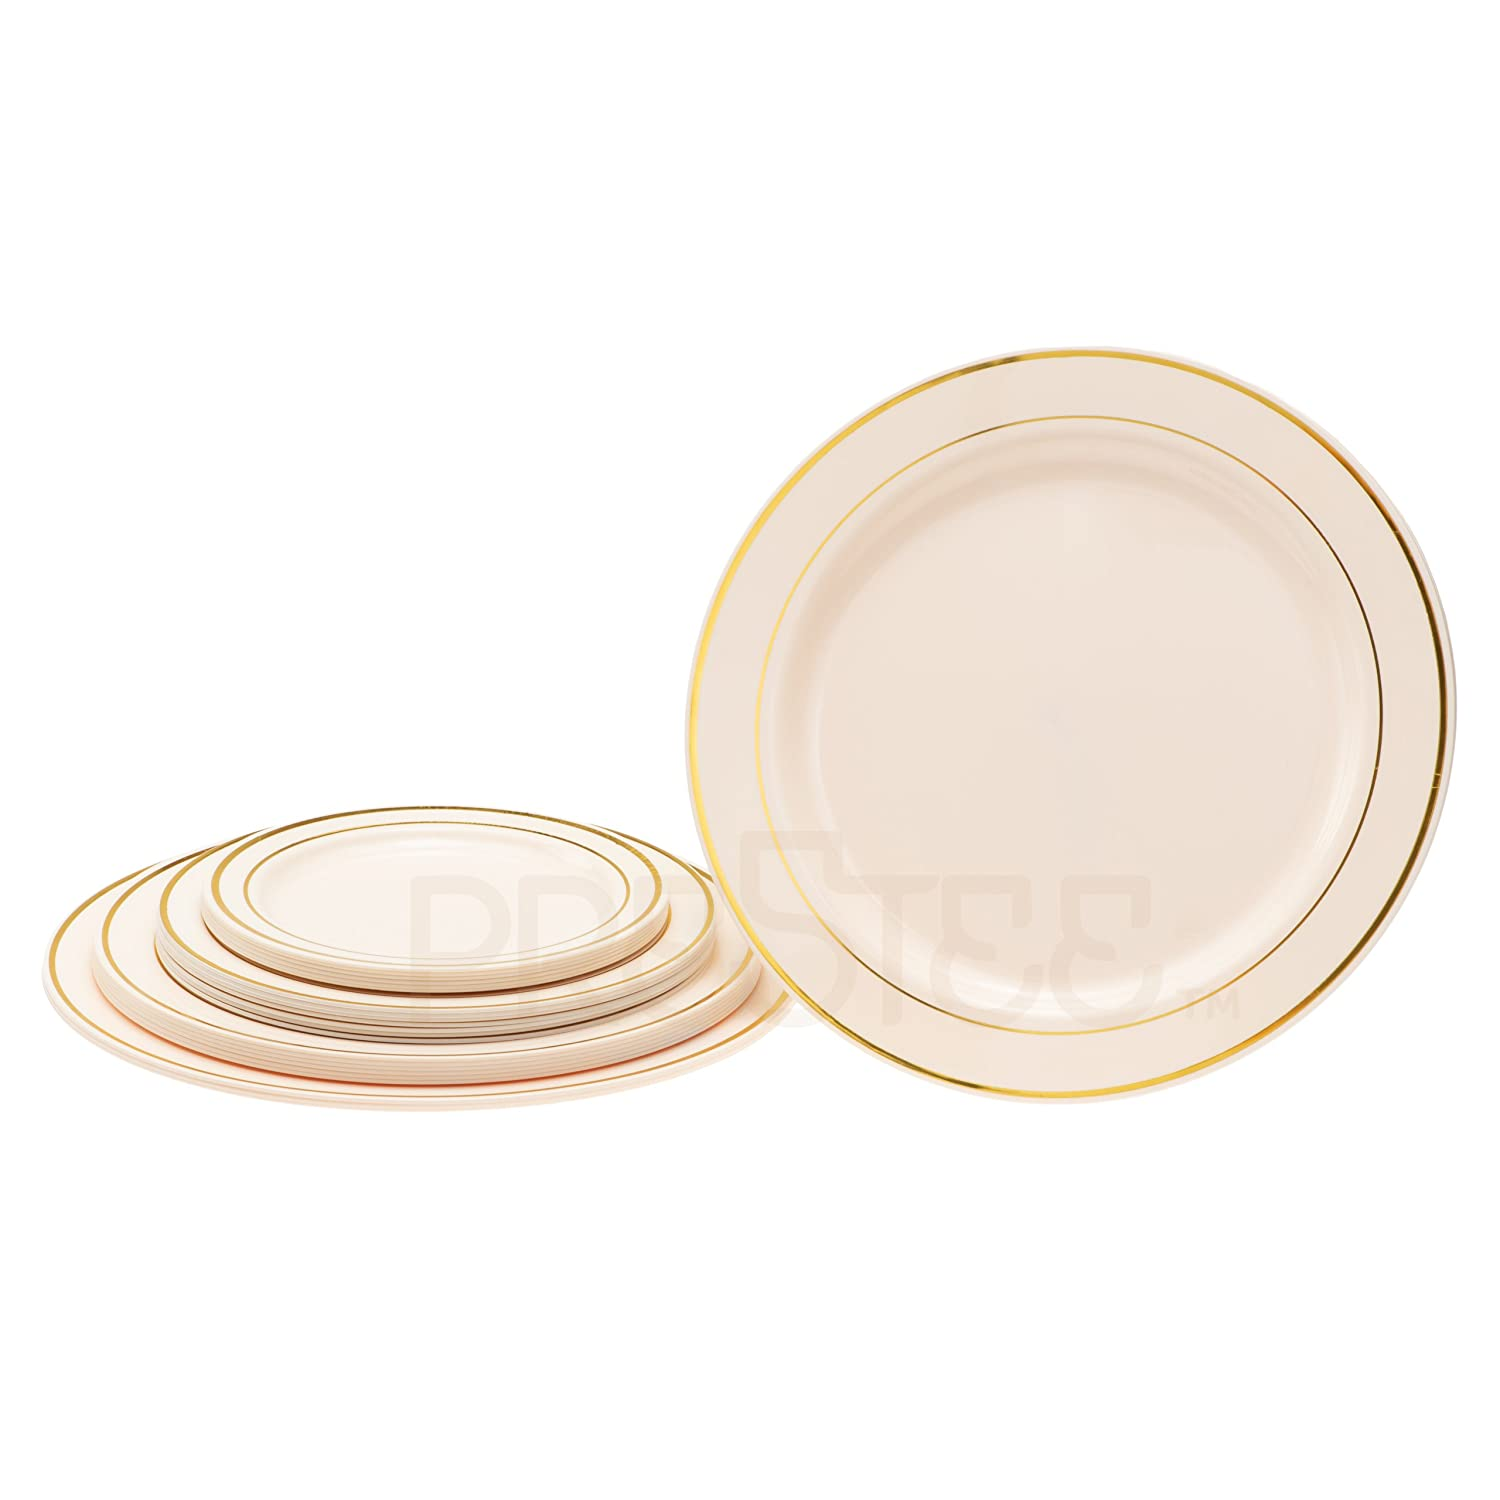 Amazoncom Deluxe Plastic Party Disposable Plates 1025 Inch